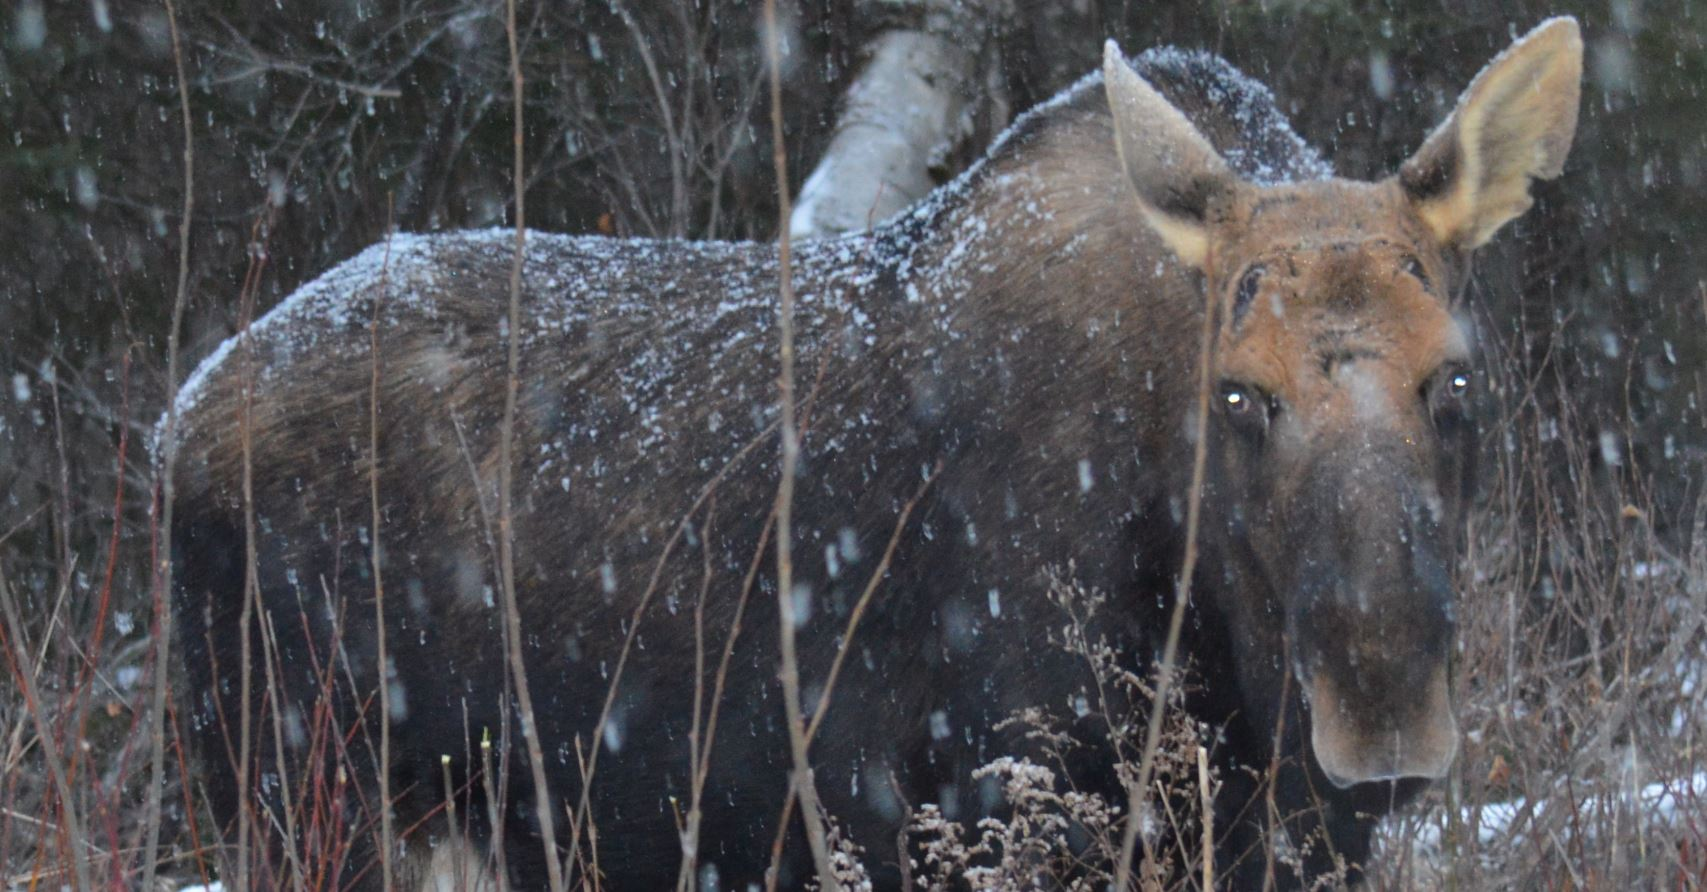 Bull moose, Algonquin Park, Dec 9th, 2014